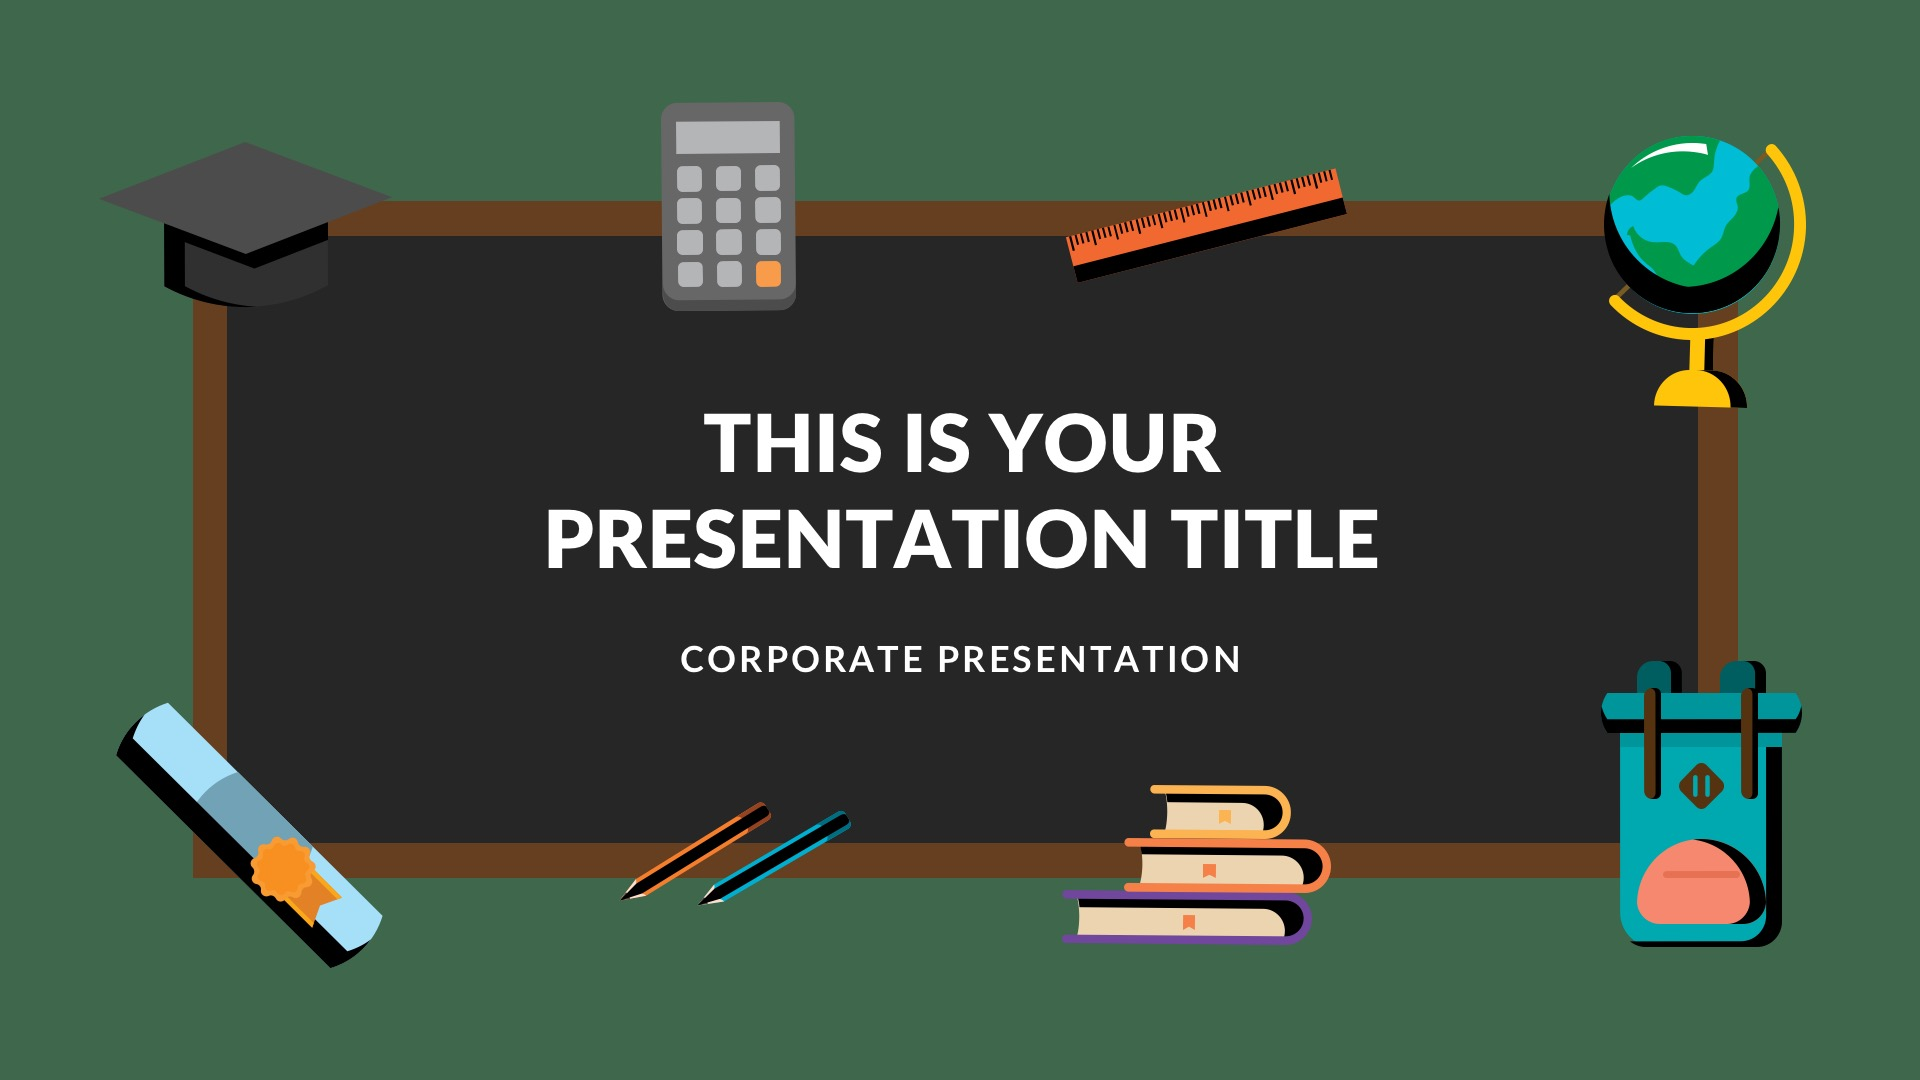 Blackboard Free Google Slides Theme, PowerPoint, Keynote Themes